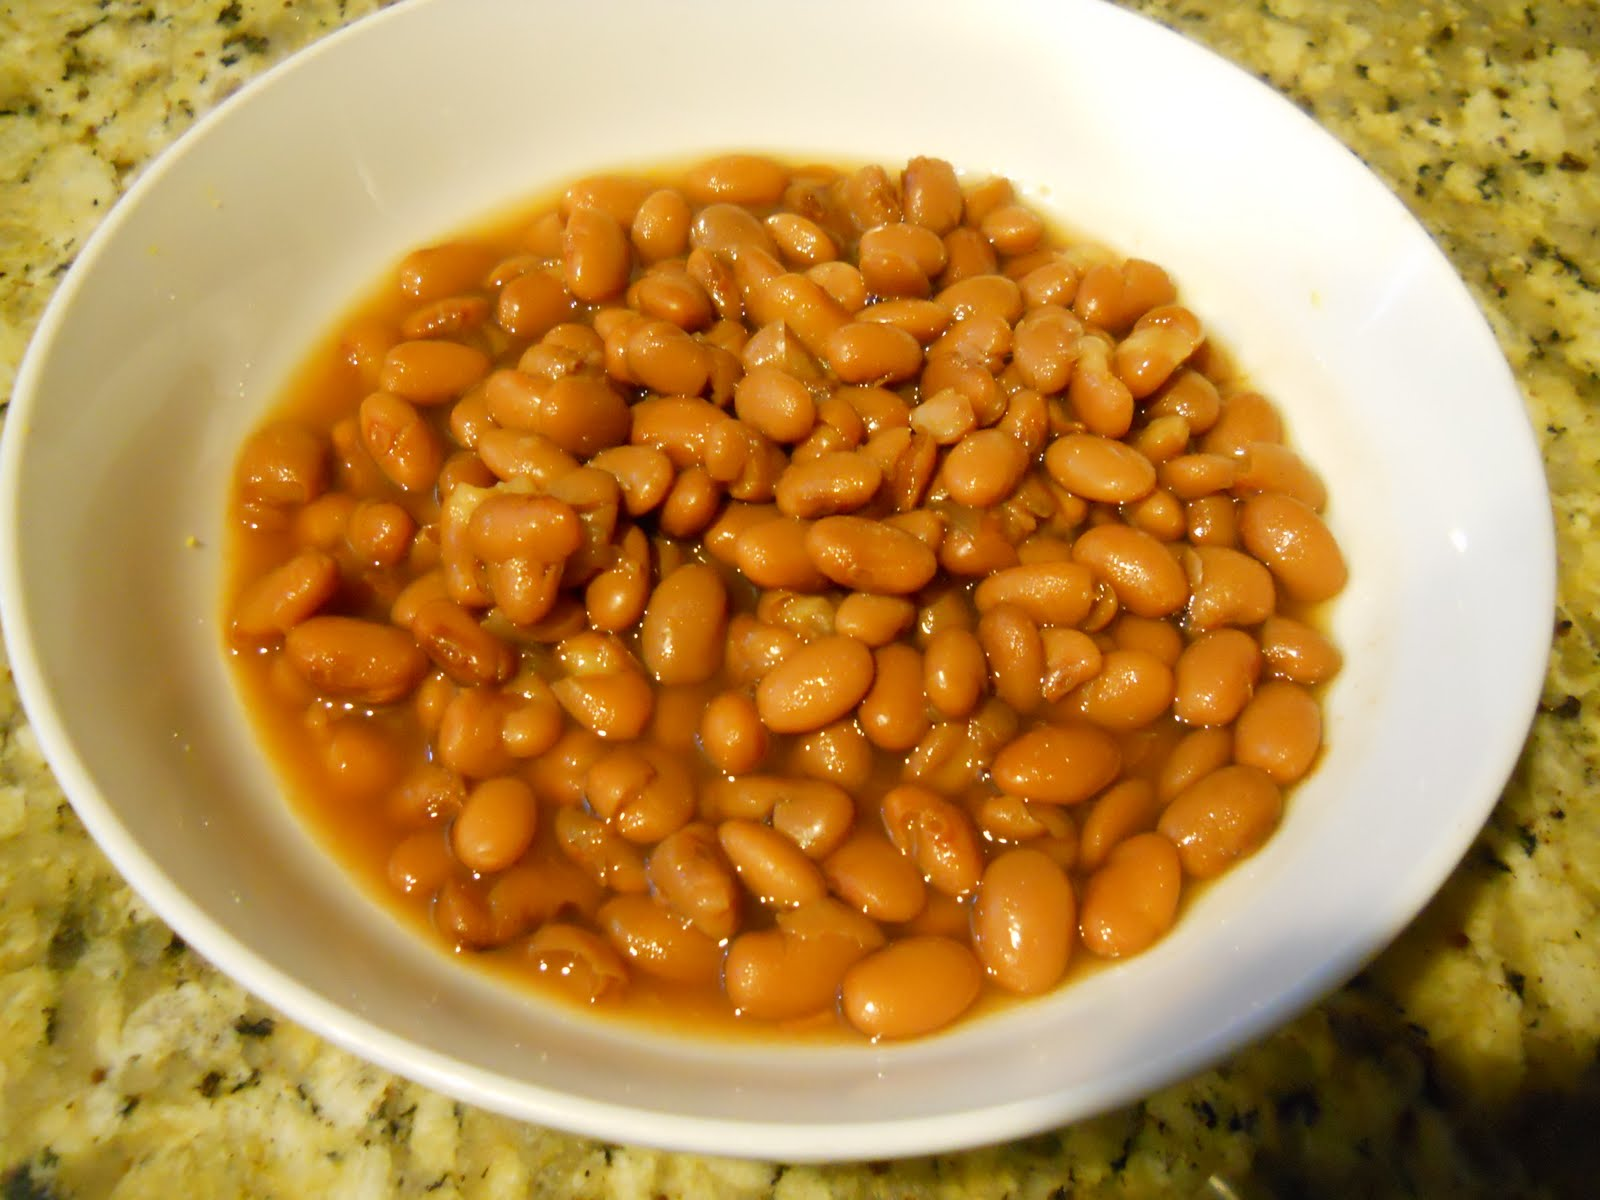 Fergie's Bites: Pressure Cooker Pinto Beans